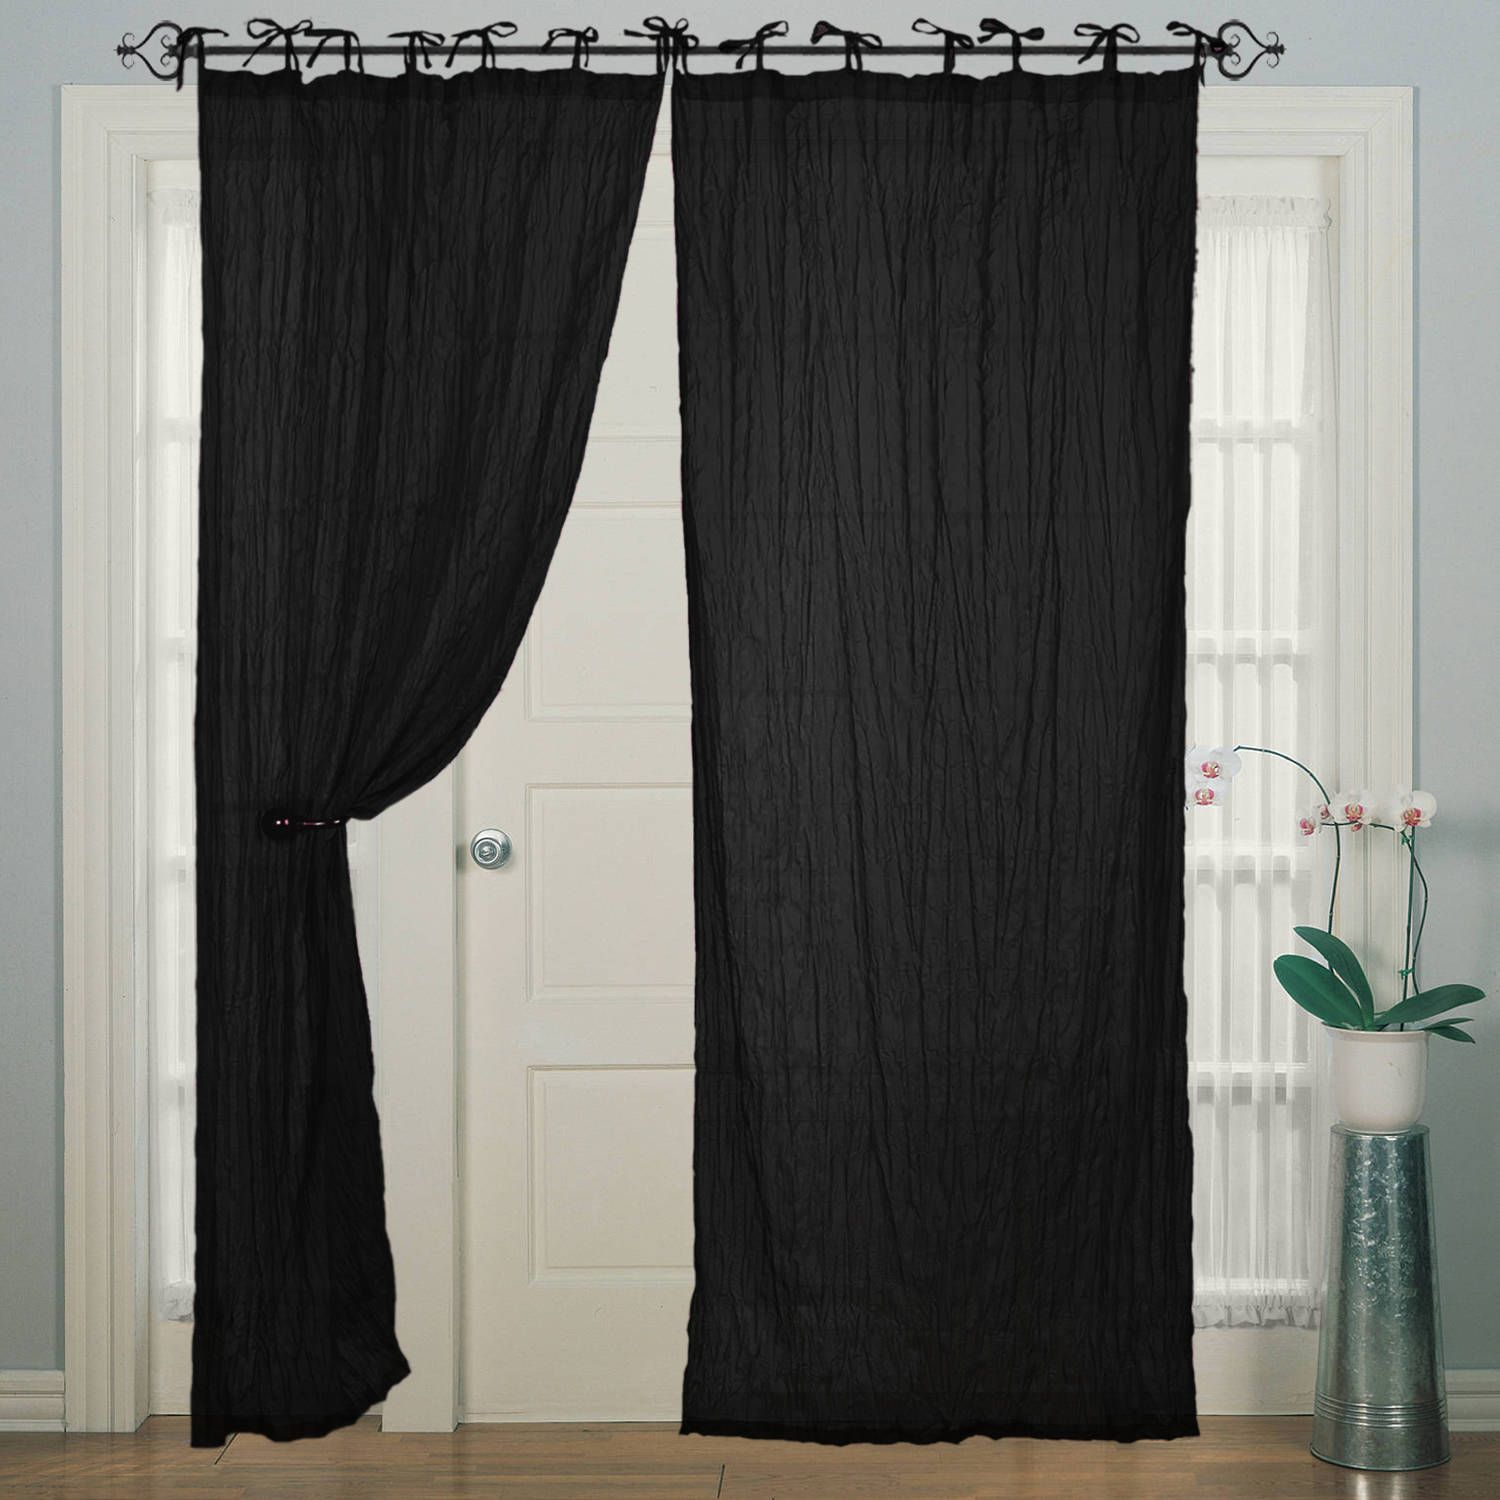 Tie Top Cotton Piping Black Window Door Curtain For Bedroom Cotton Home And Living Plan Curtain By Jagirdarsho Black Windows Door Curtains Windows And Doors